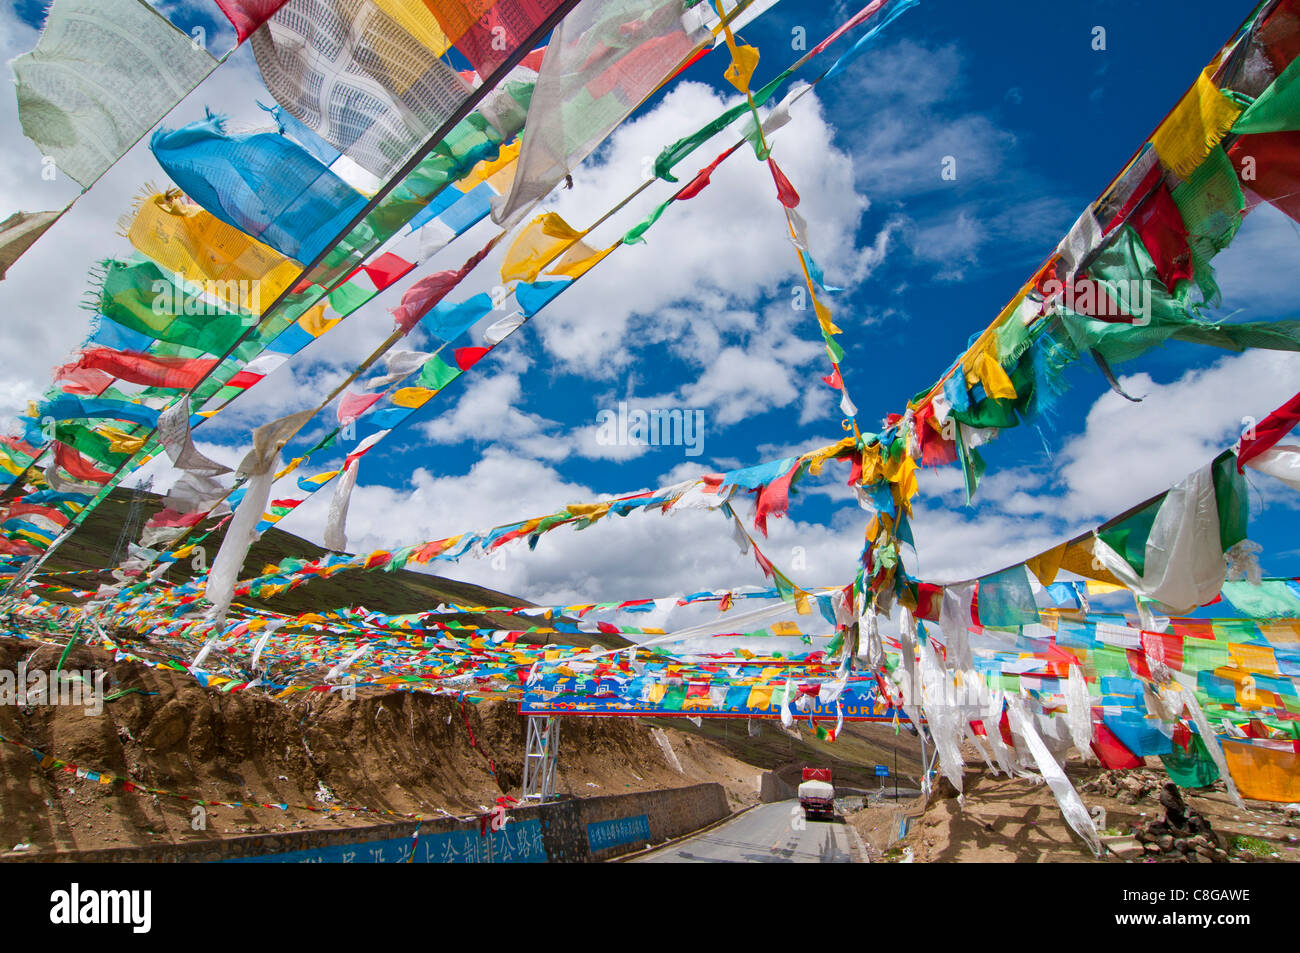 Prayer flags crossing the Friendship Highway between Lhasa and Kathmandu, Tibet, China - Stock Image